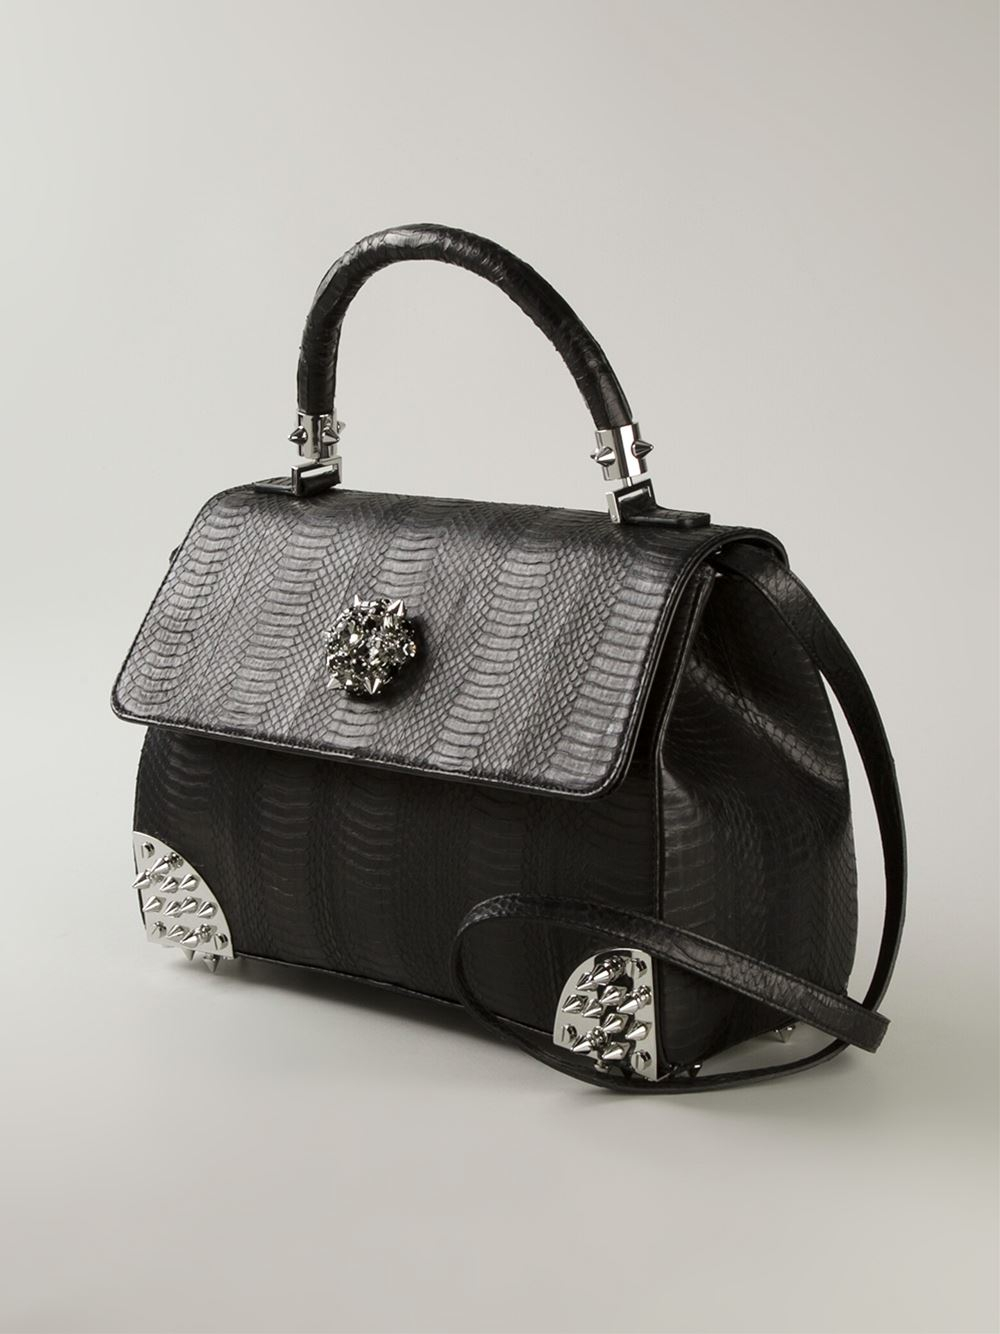 LUGGAGE - Luggage Philipp Plein